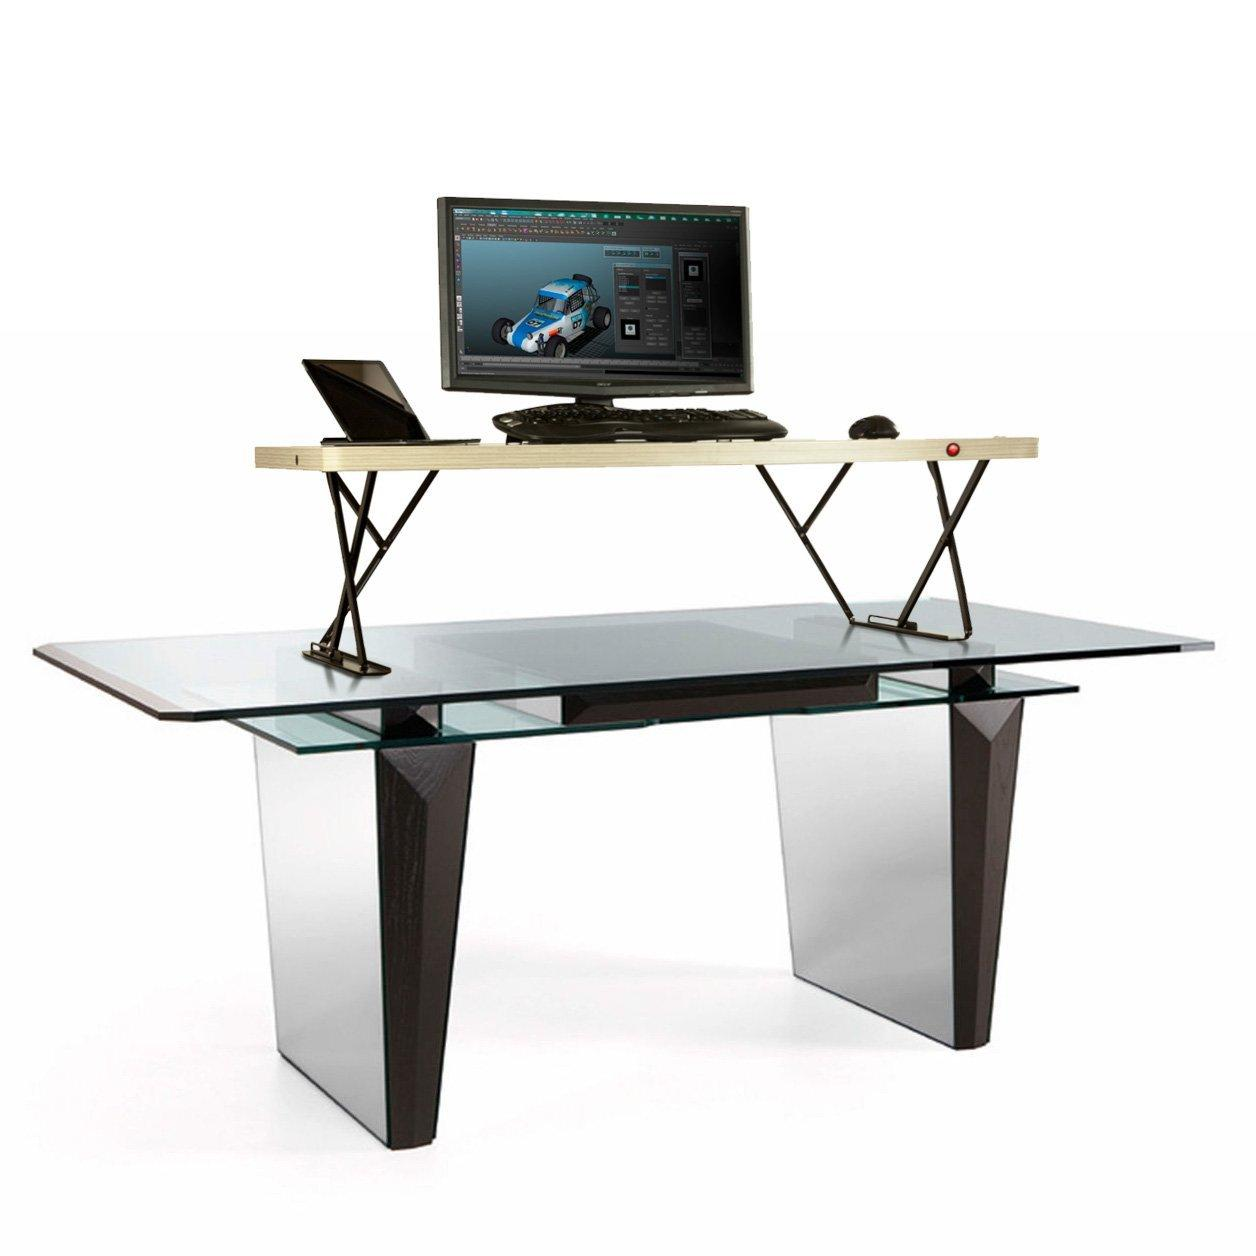 Amazon.com: Halter Electric Adjustable Height Table Top ...